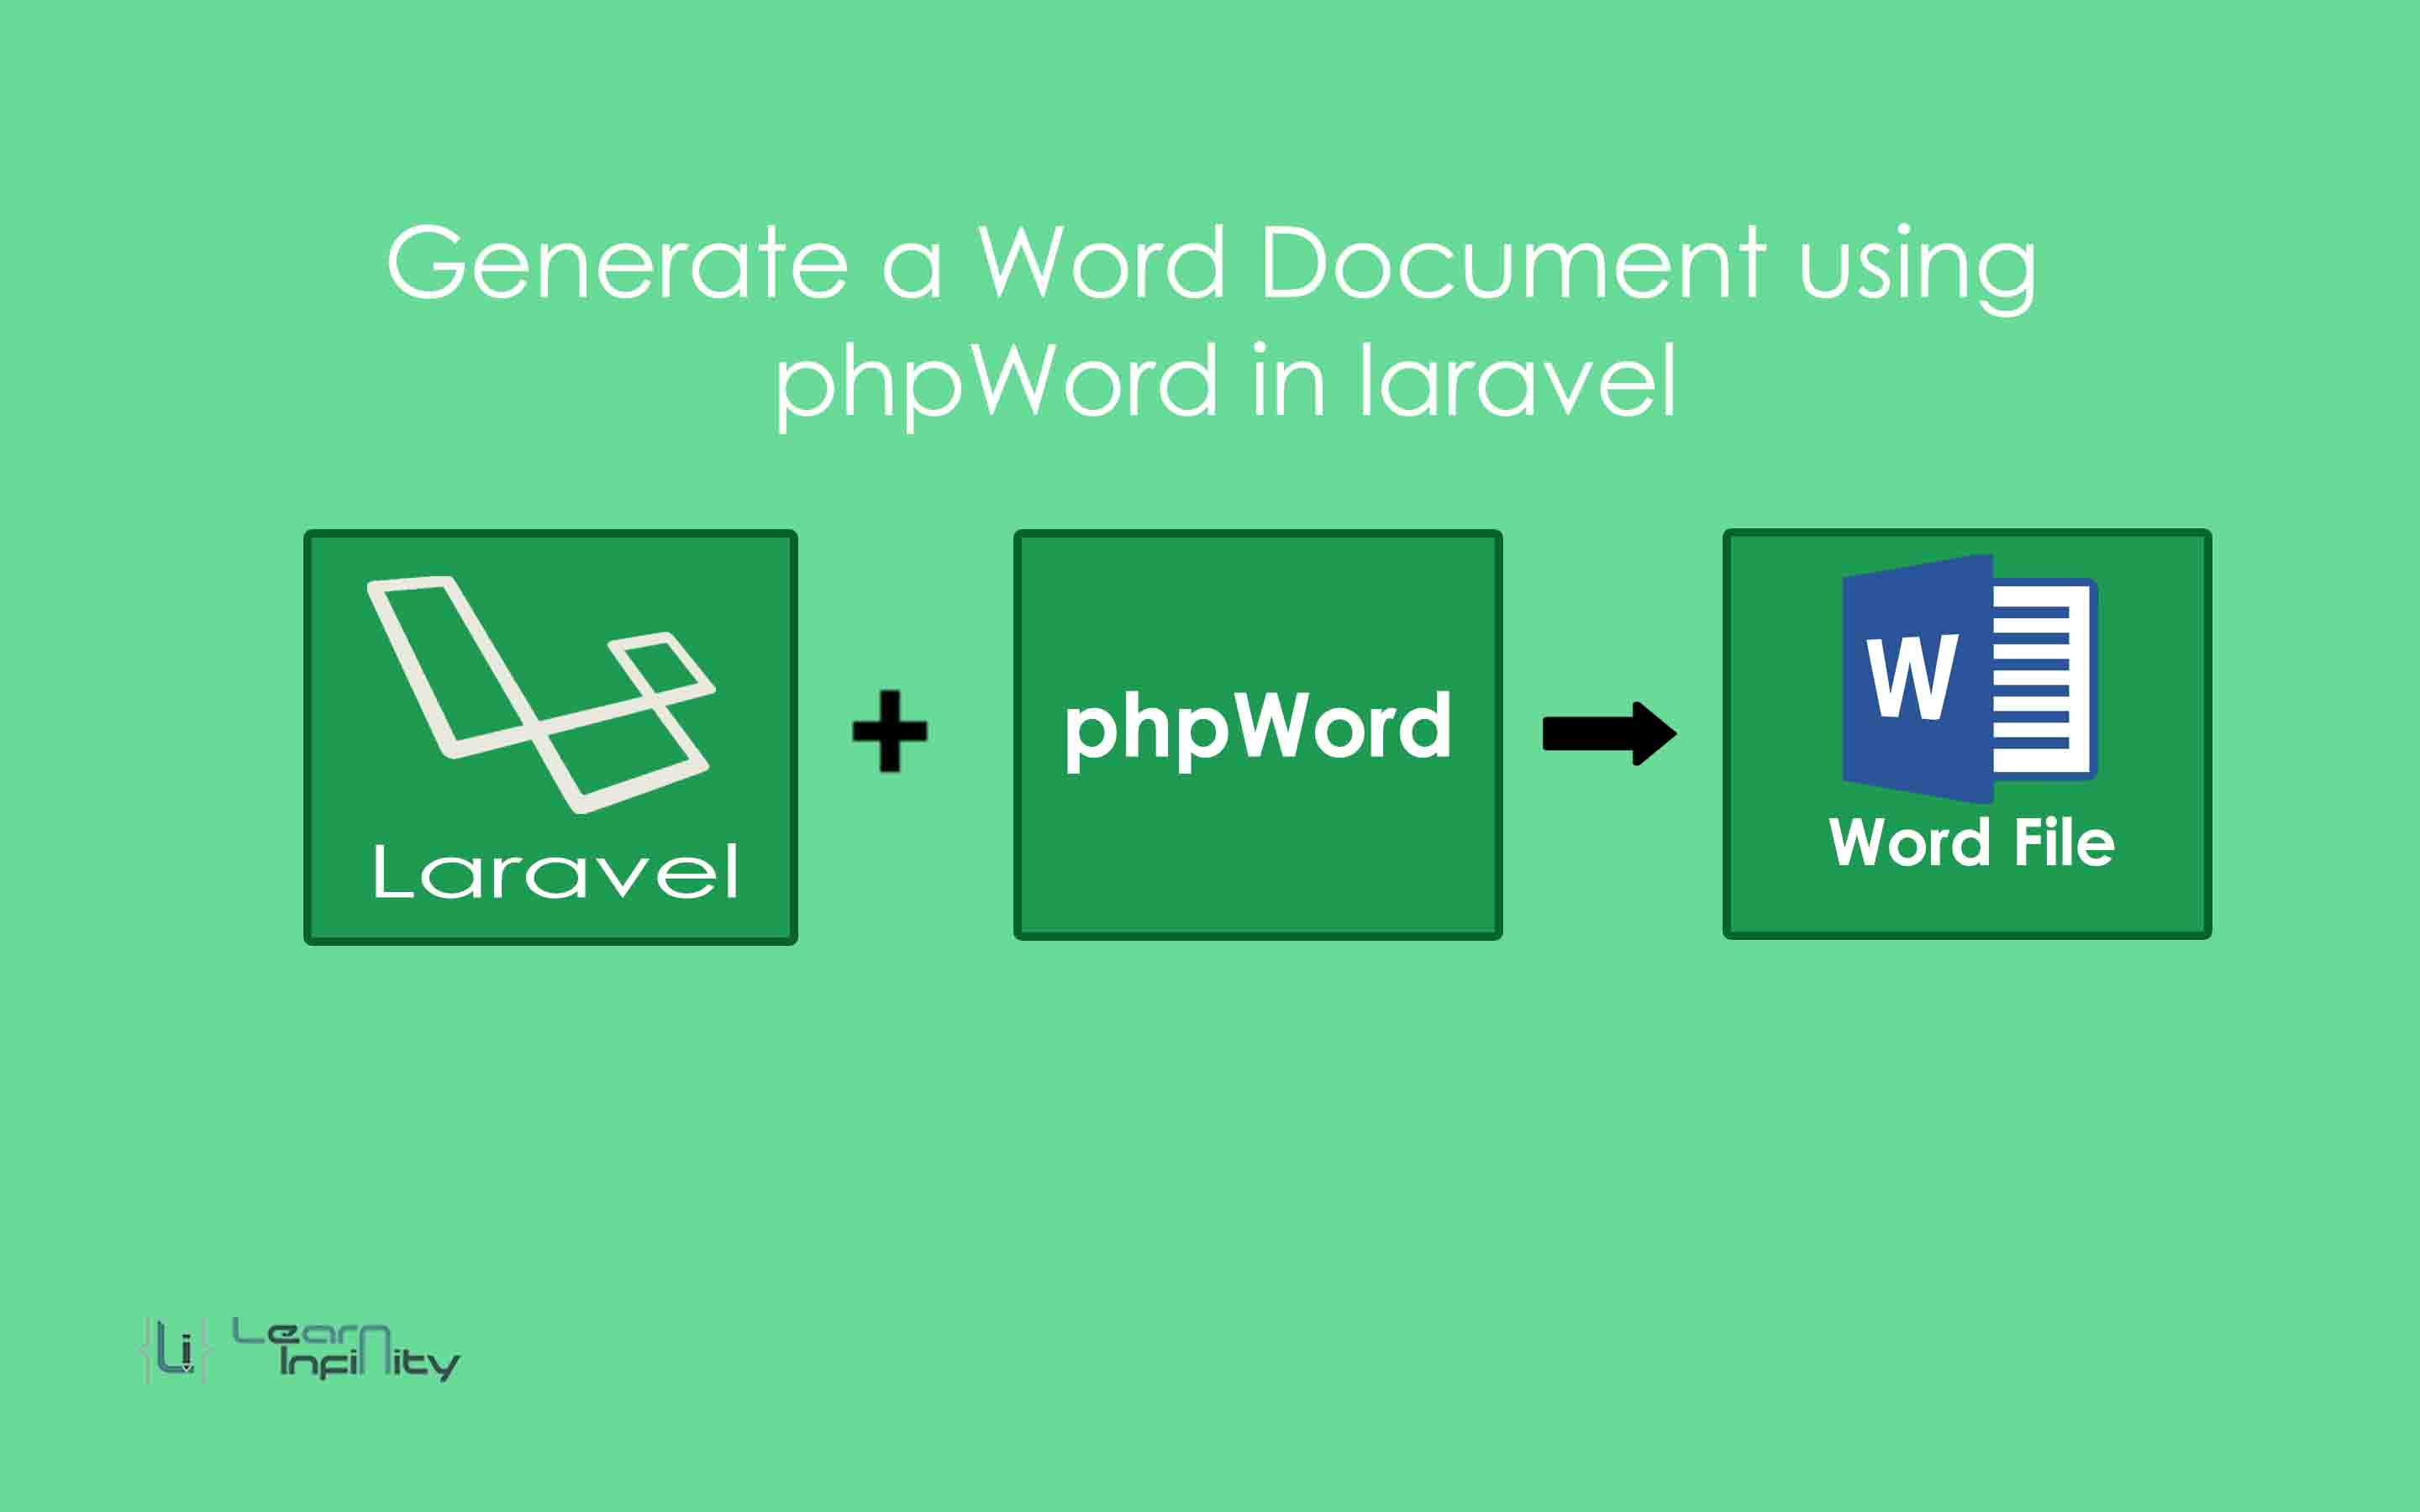 Generate a Word Document using phpWord in Laravel